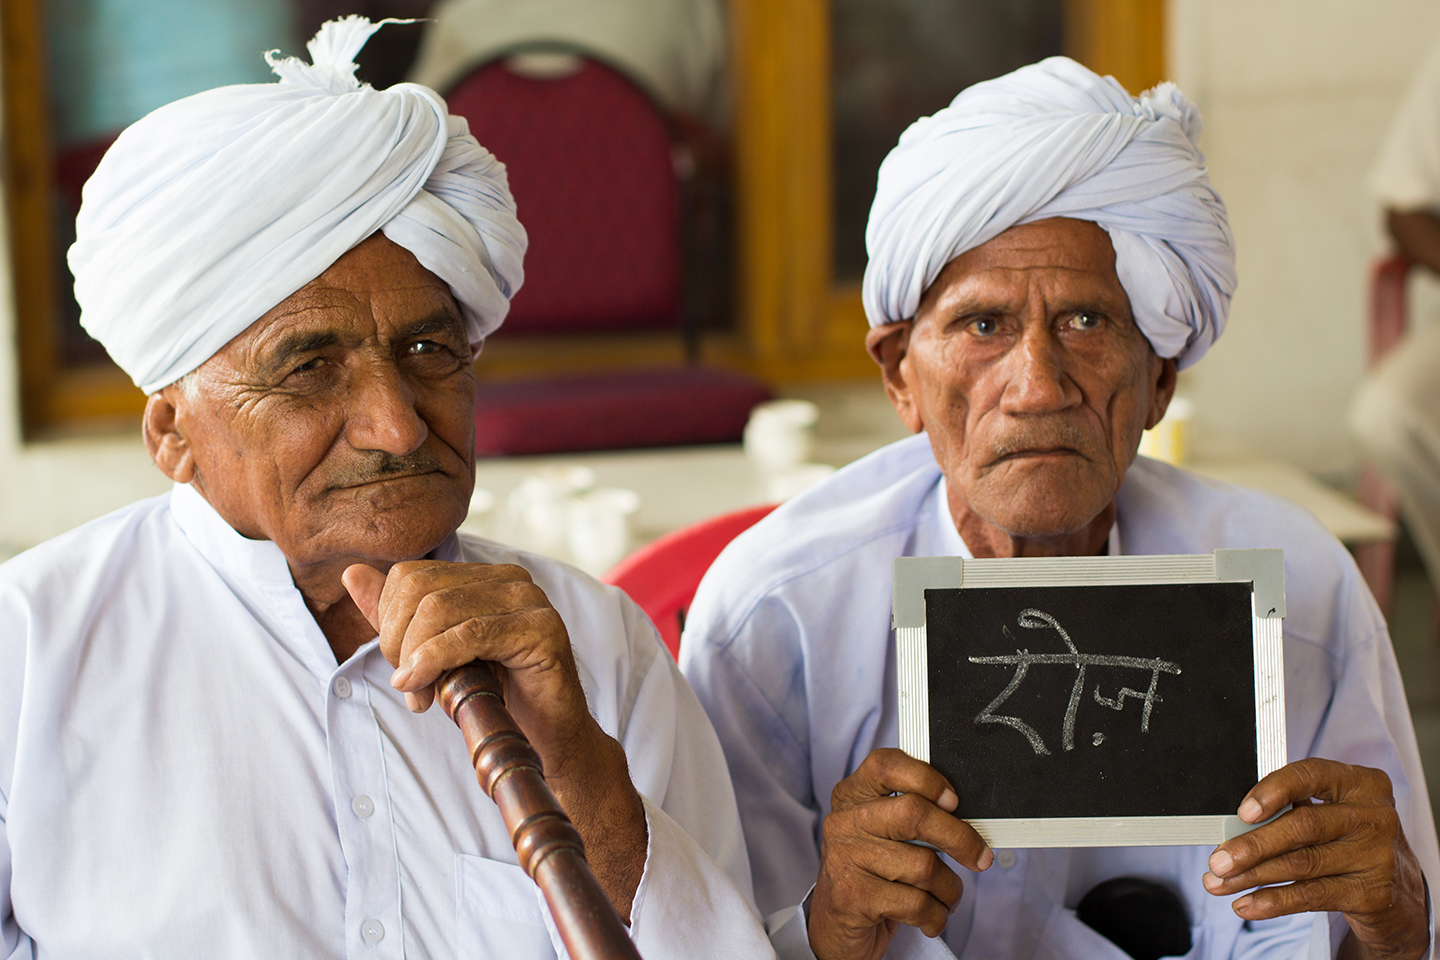 Gopiram and Ranvir Singh are respected elders of a village in Karnal district, Haryana. Both drink chai every day, many times.